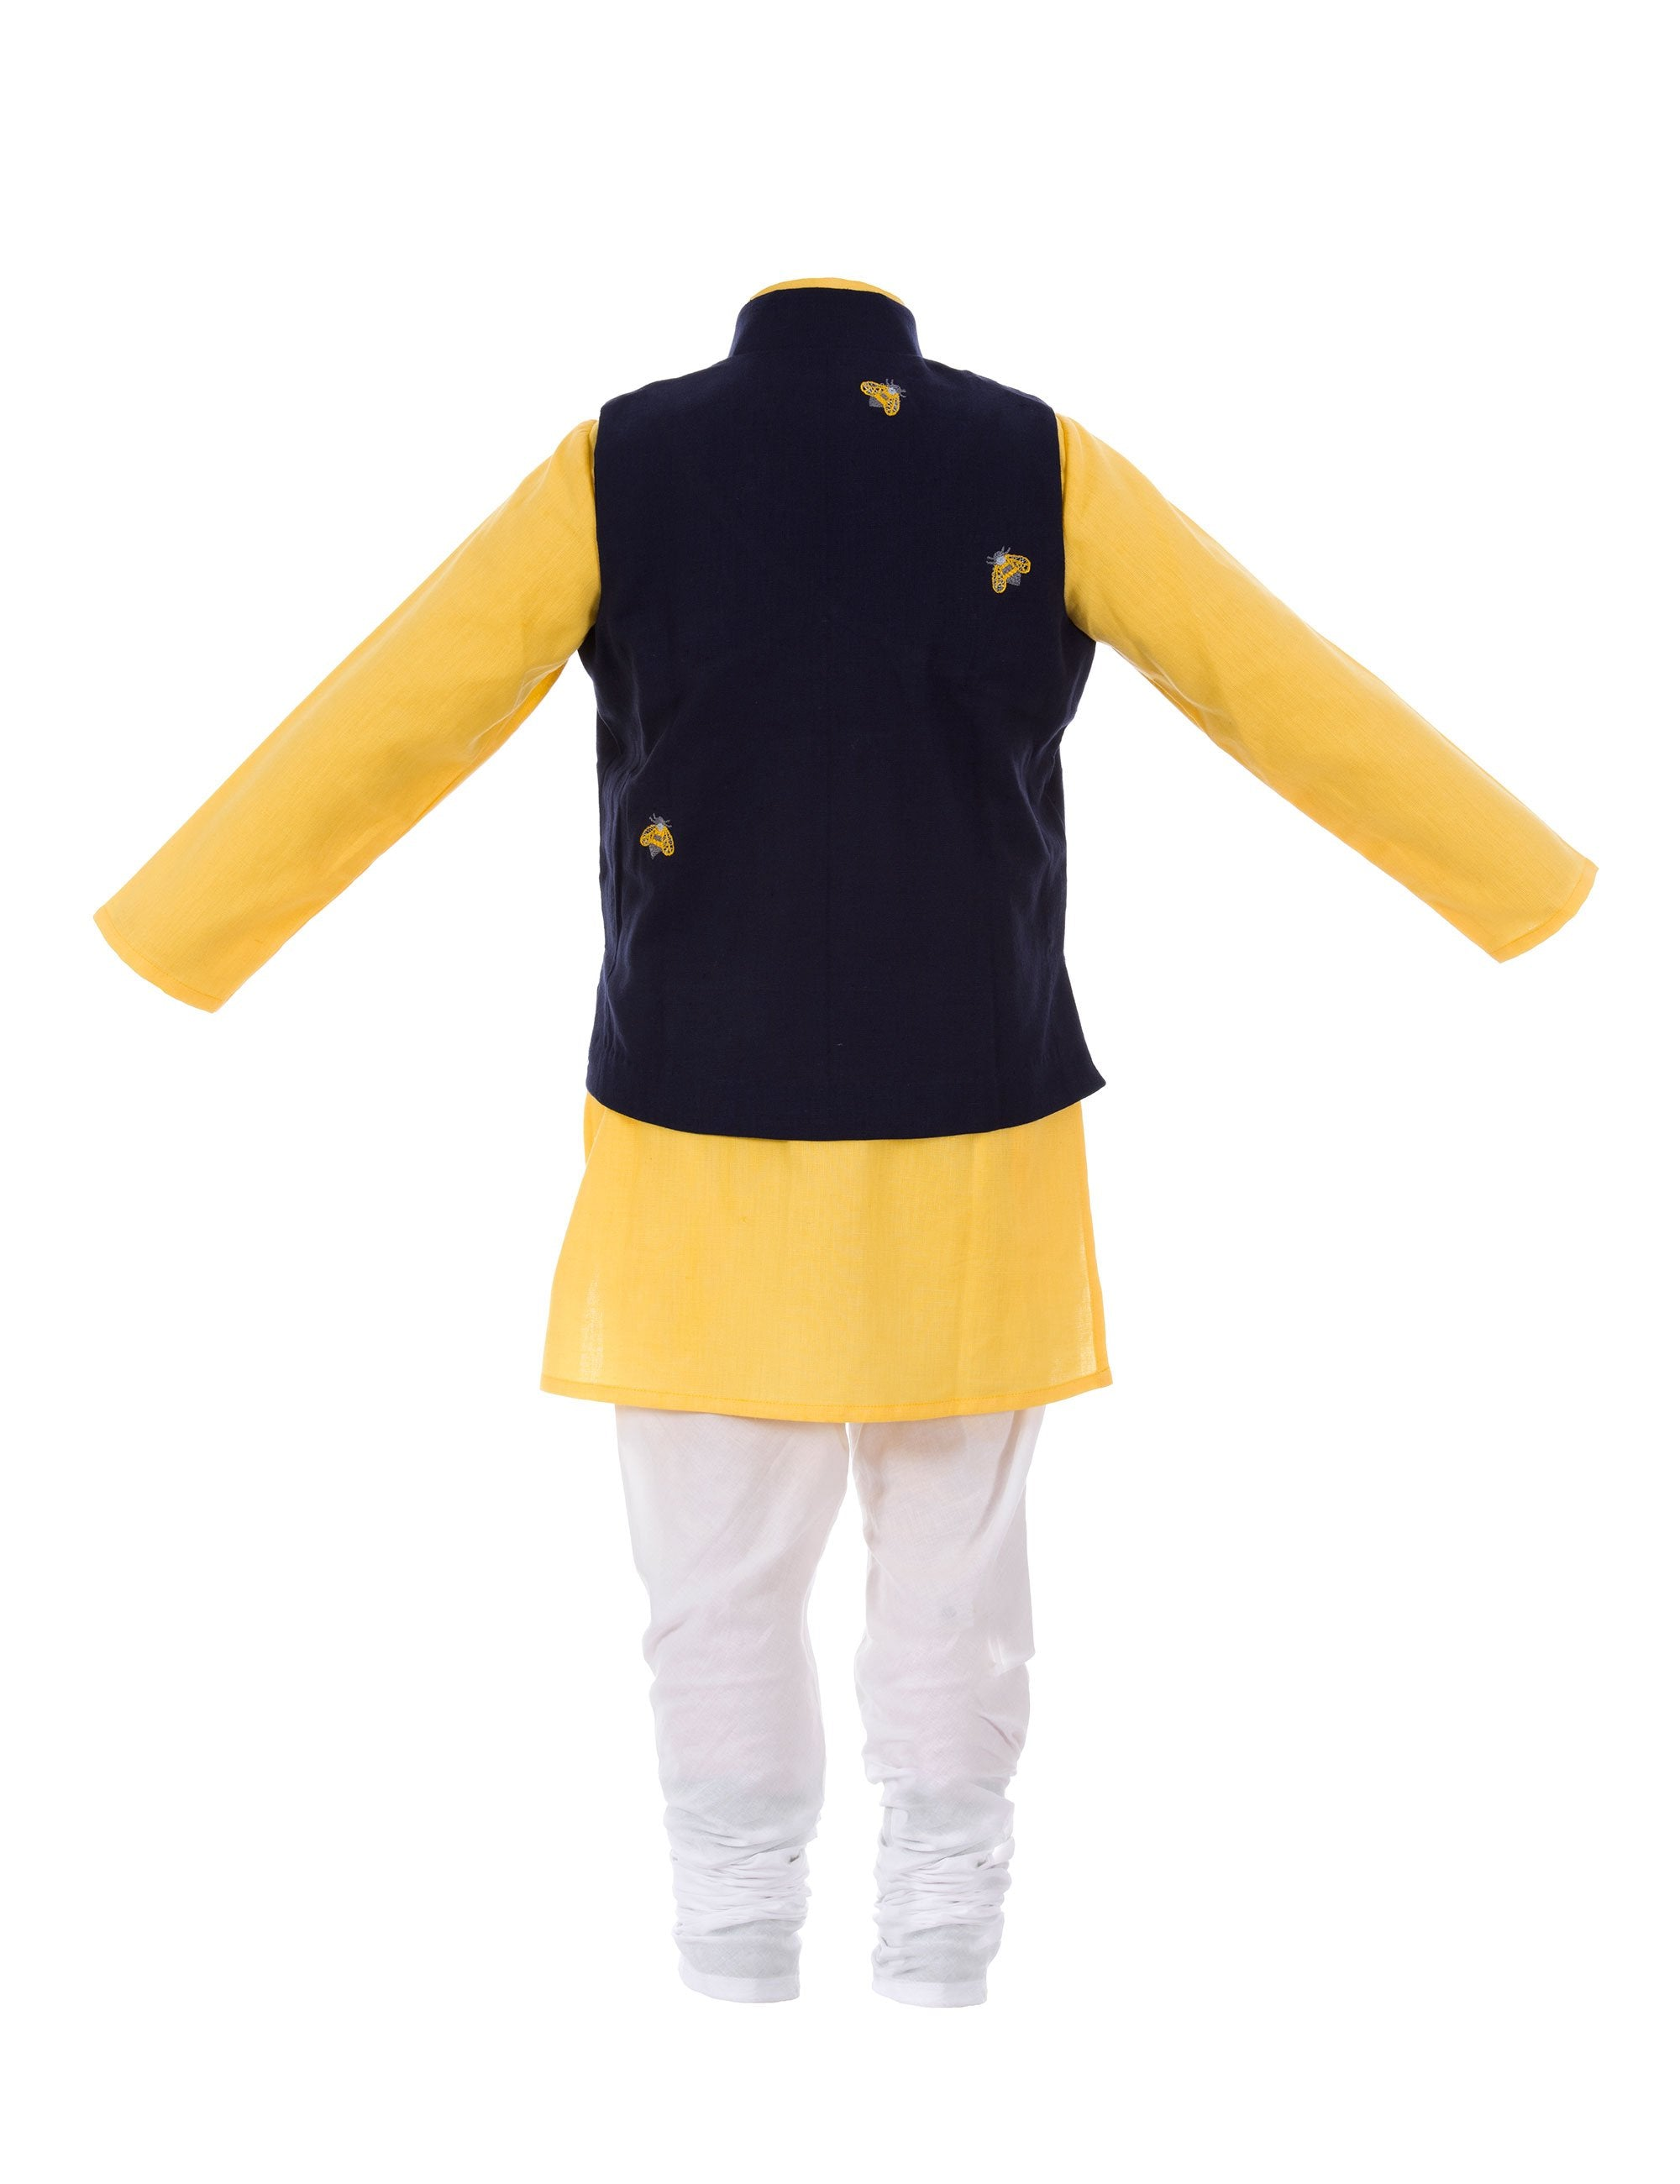 Kurta/Bug Jacket N Yellow and Blue Colour for Boys